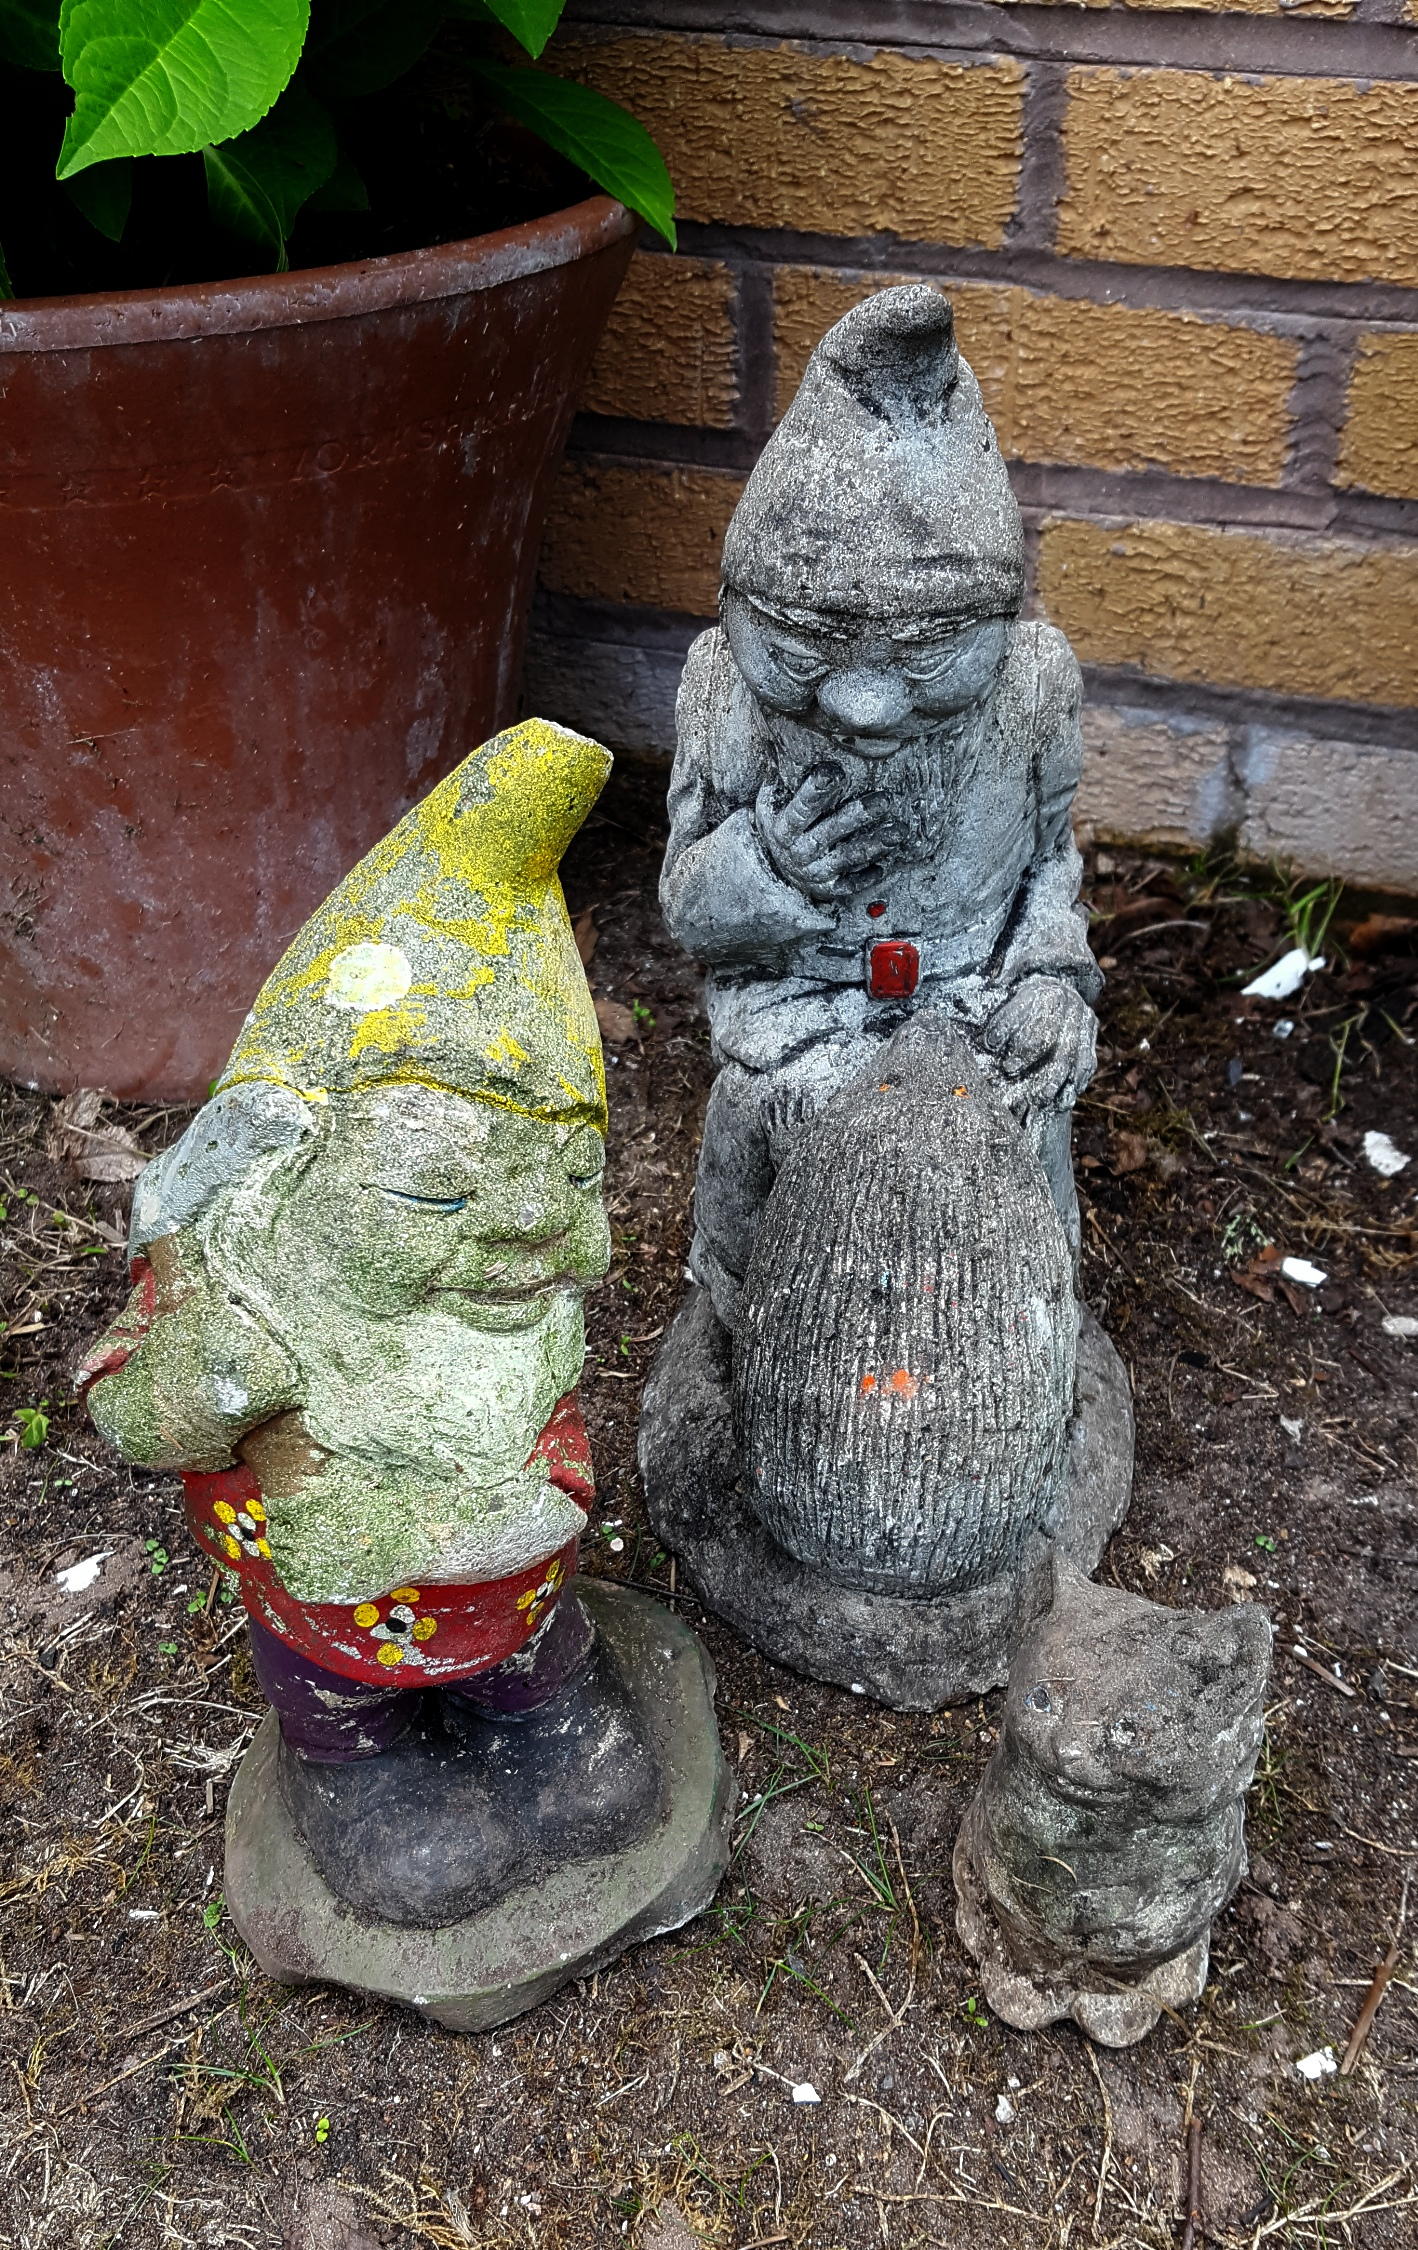 Lot 116 - Vintage Garden Ornaments 2 x Gnomes and 1 x Other Figure Reconstituted Stone NO RESERVE